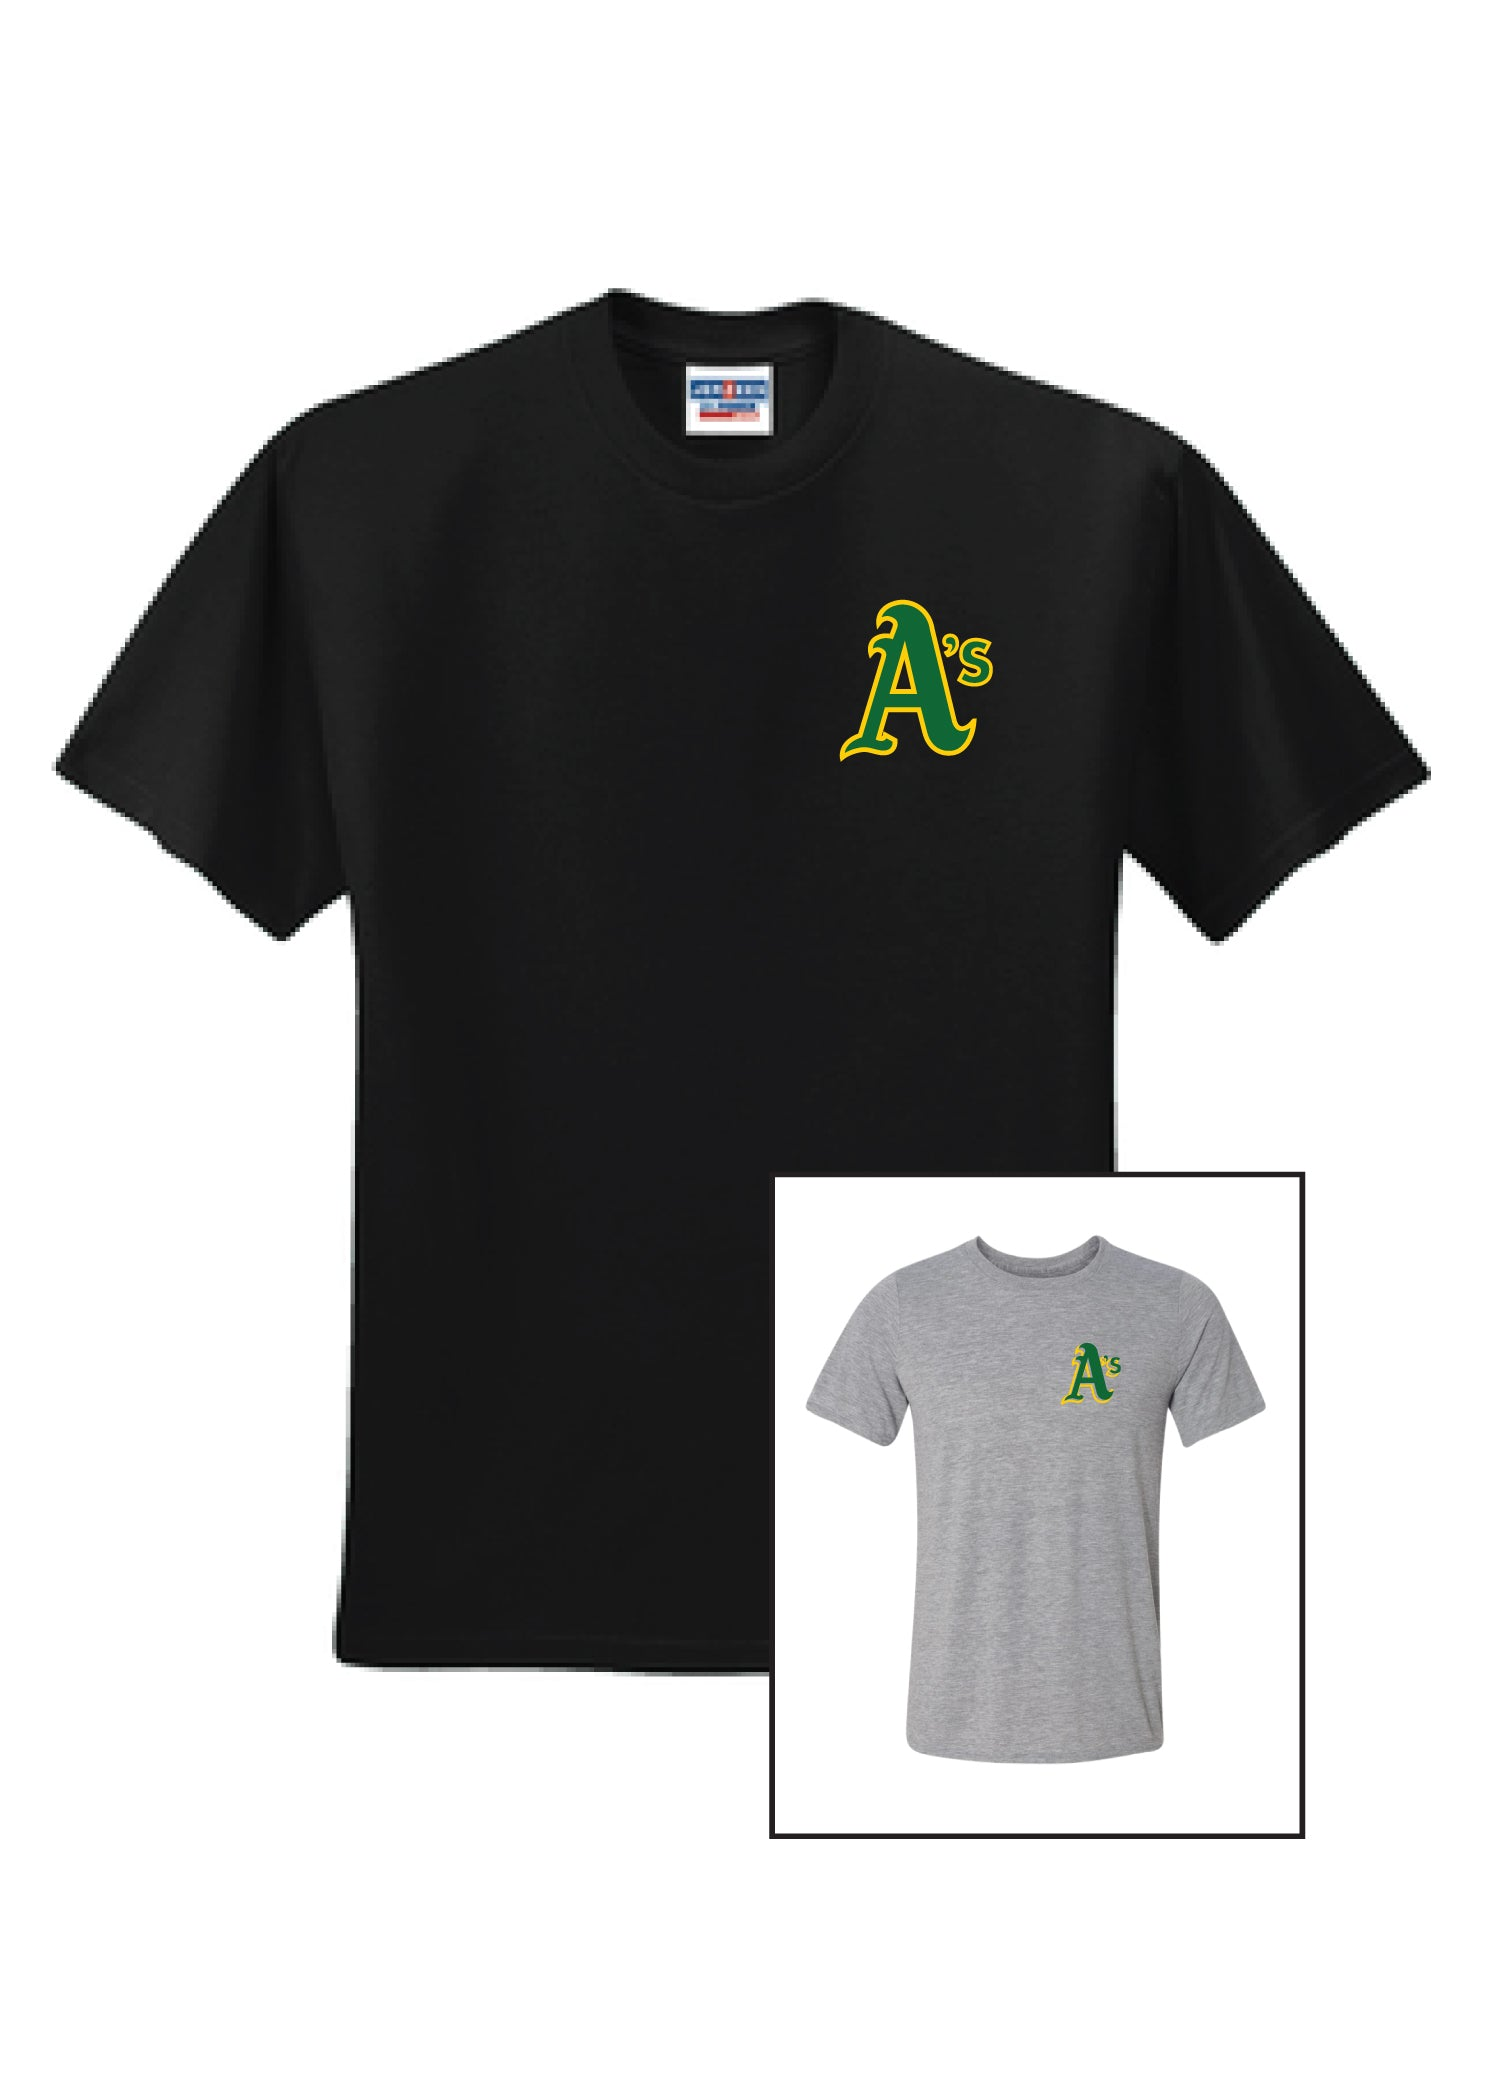 A's Logo Dri-fit T-Shirt Adult Unisex